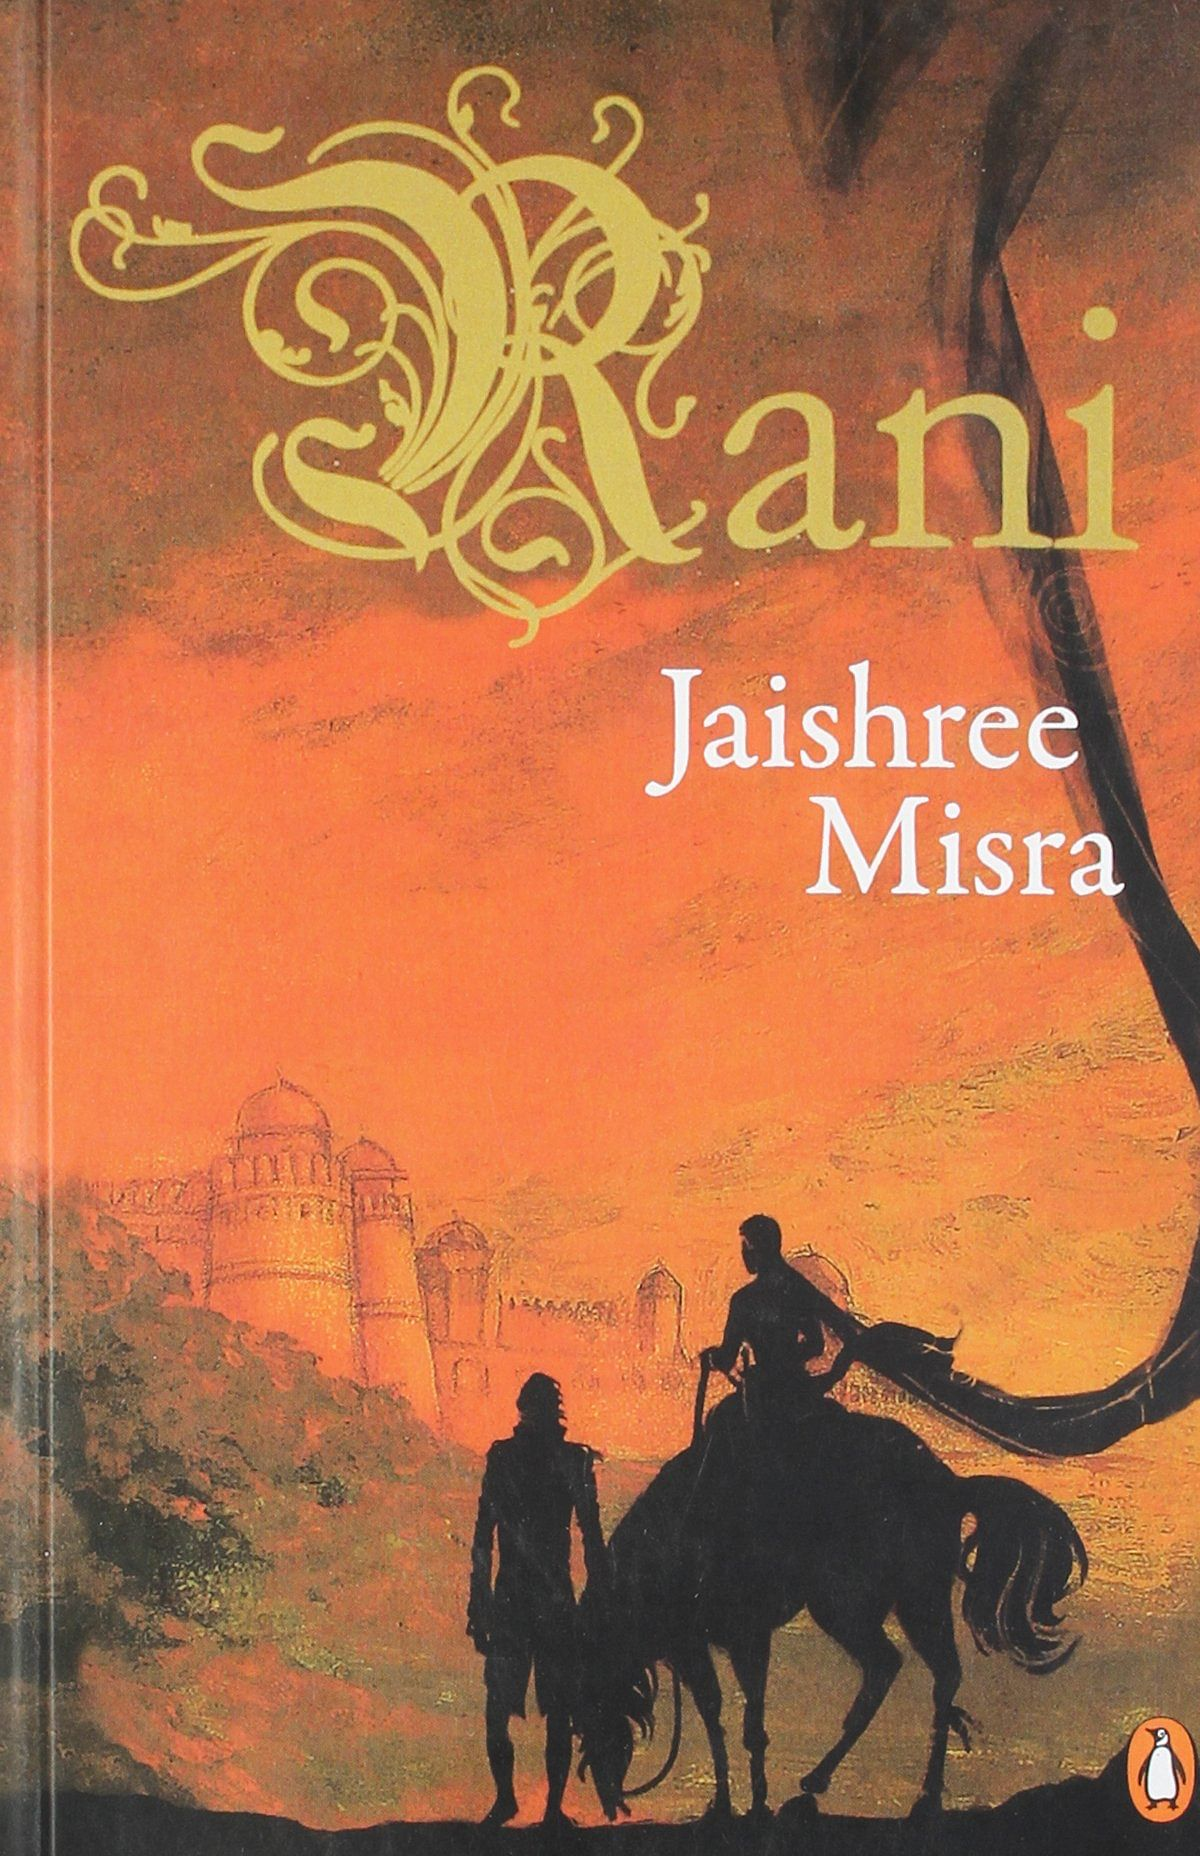 The cover of Rani by Jaishree Misra, a book banned in India.